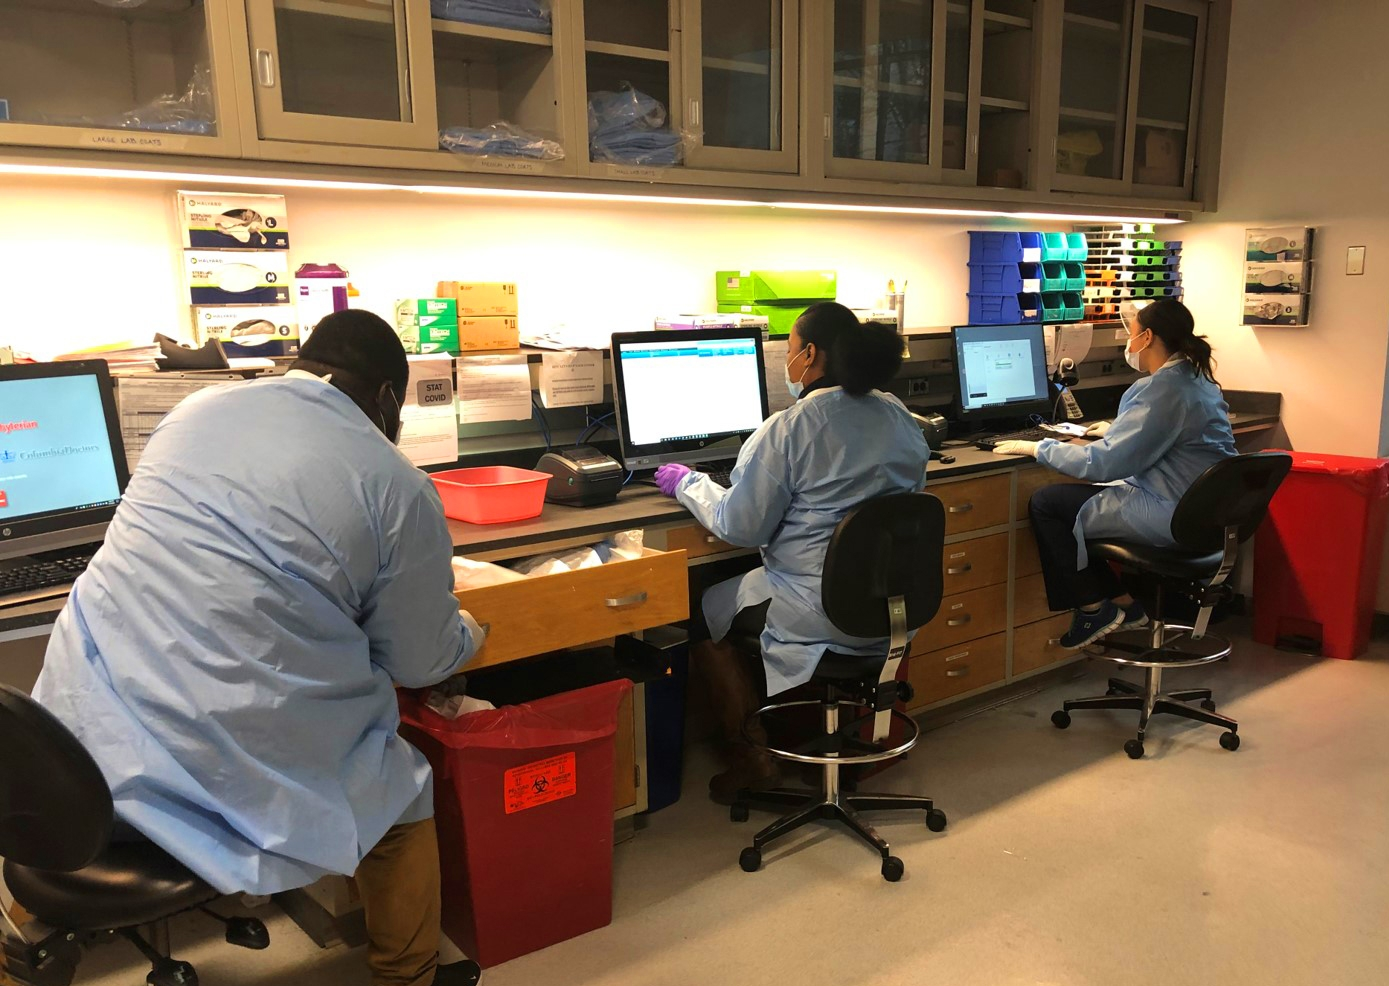 doctors working in a testing lab on computers